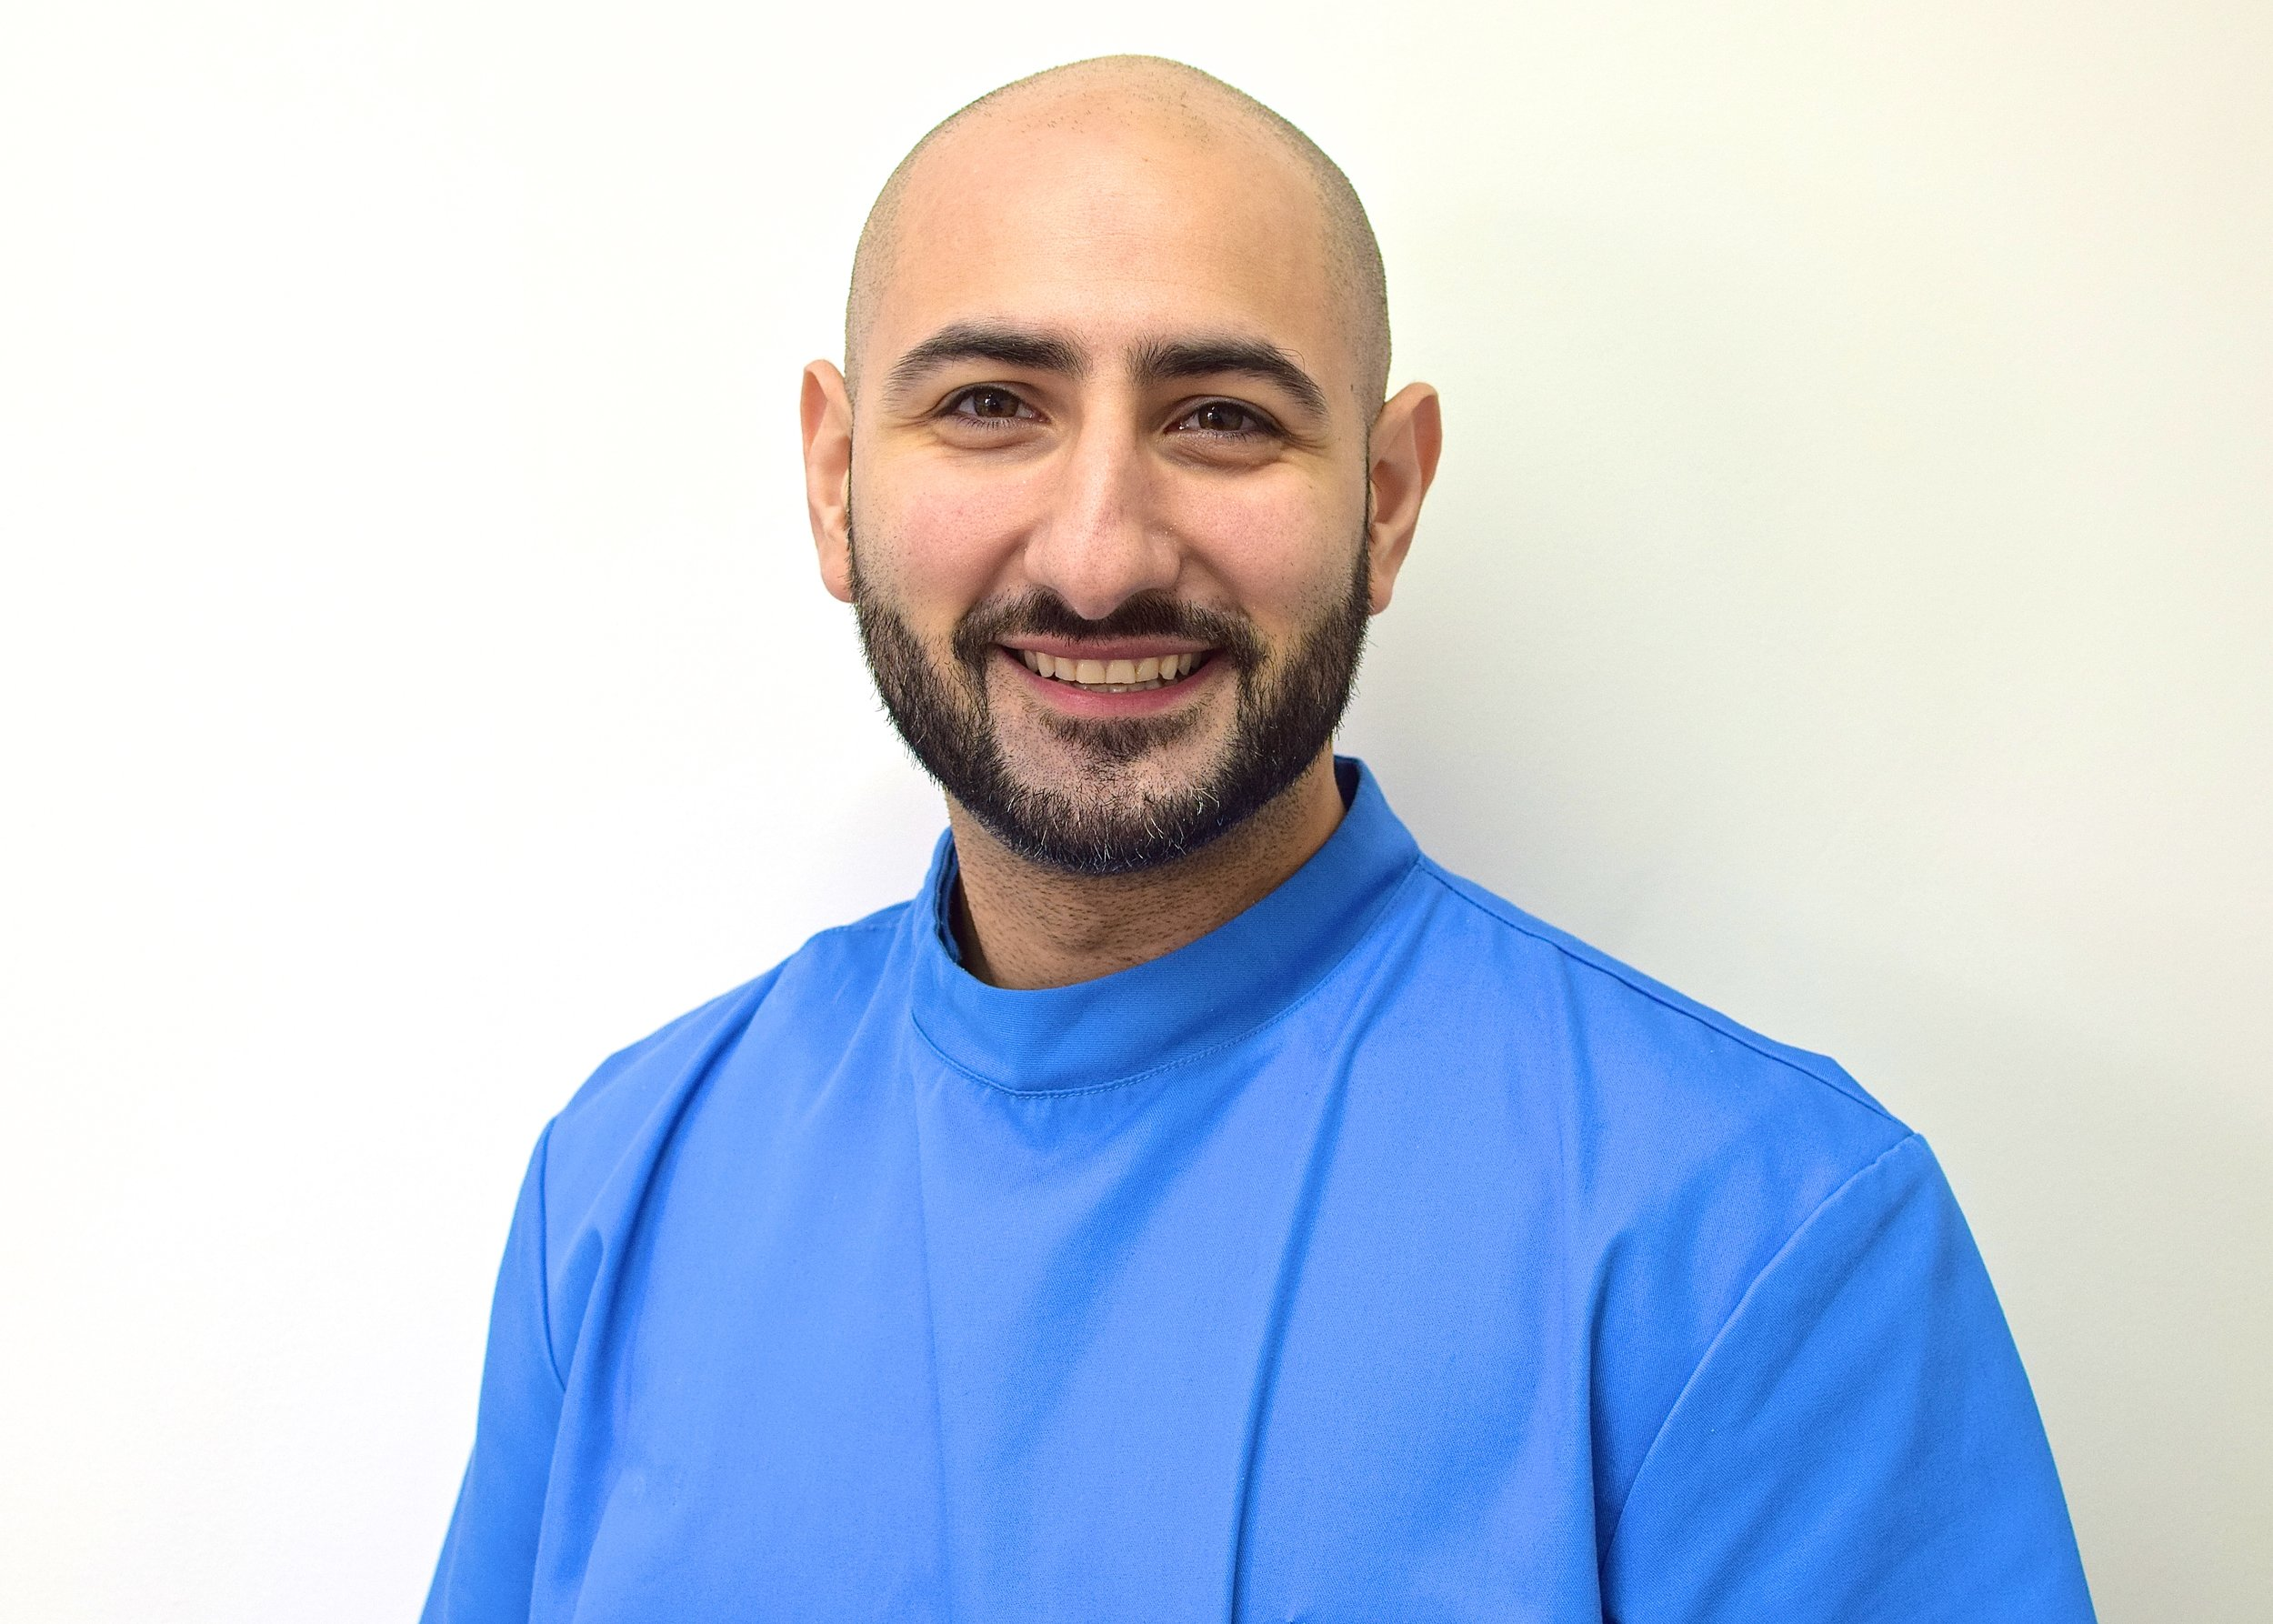 Video help - with Dr Milad Shadrooh - Watch here to get some online assistance from one of our key Smilelign providers.